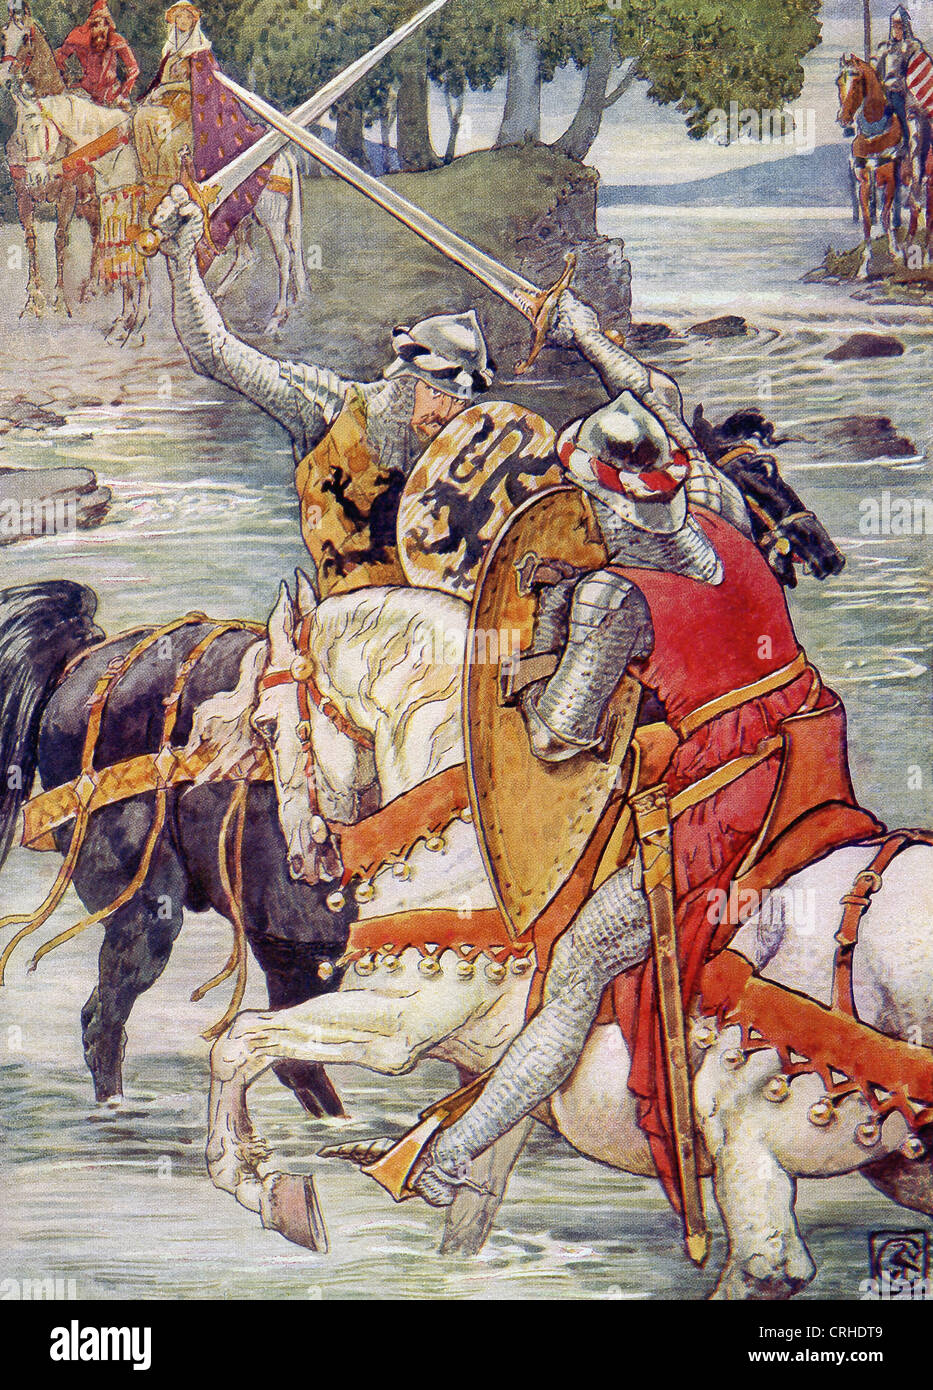 Beaumains (Sir Gareth) is winning the fight against the Green Knight at the ford. - Stock Image